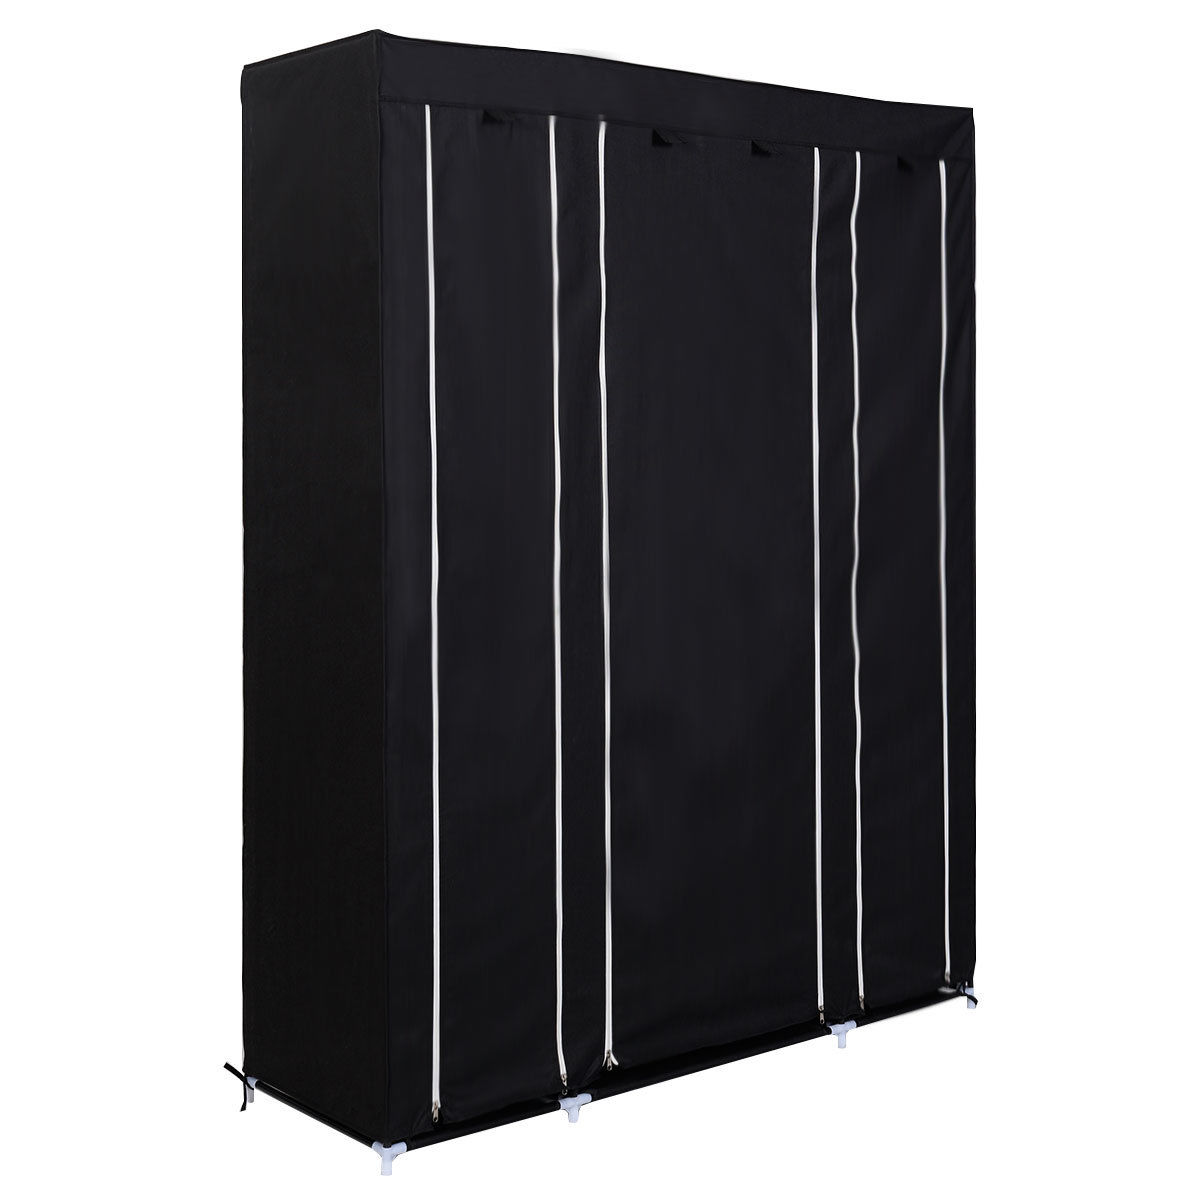 Sdfc double triple multiple canvas wardrobe rail w hanging home furniture storage black